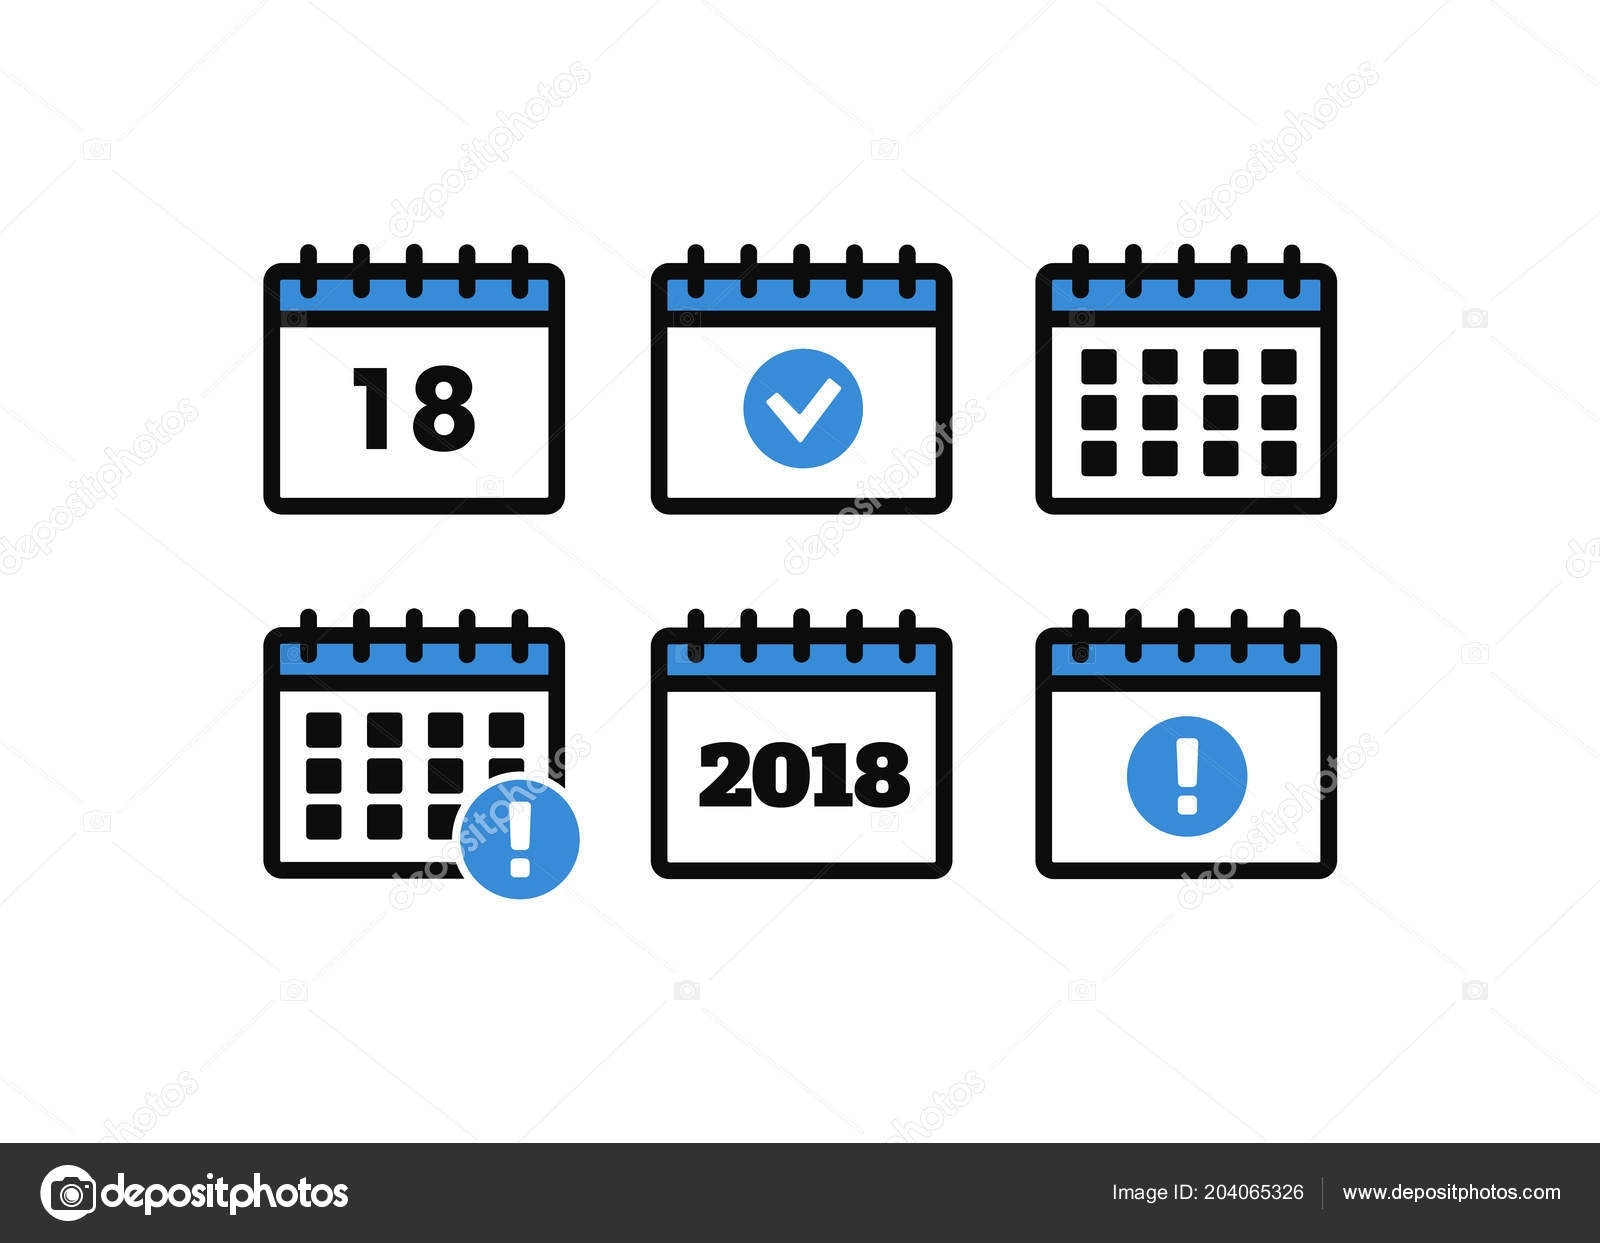 Vector Calendar Icons Event Icon Calendar Vector Sign Plan Vector Calendar Date Event Icon